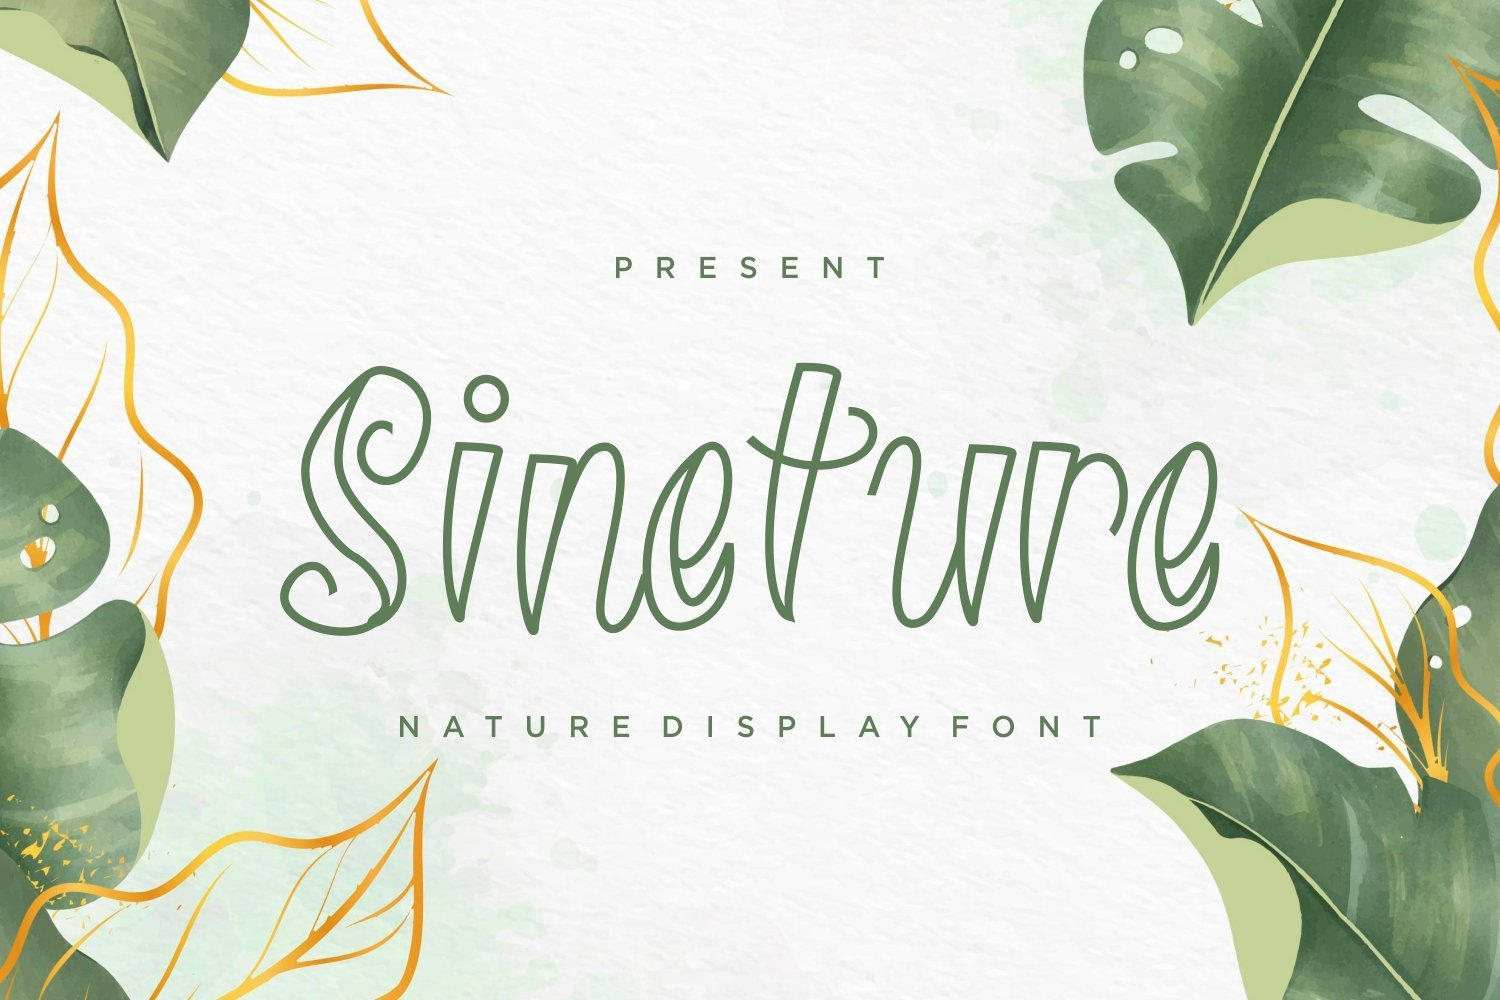 Sineture - Nature Display Font example image 1